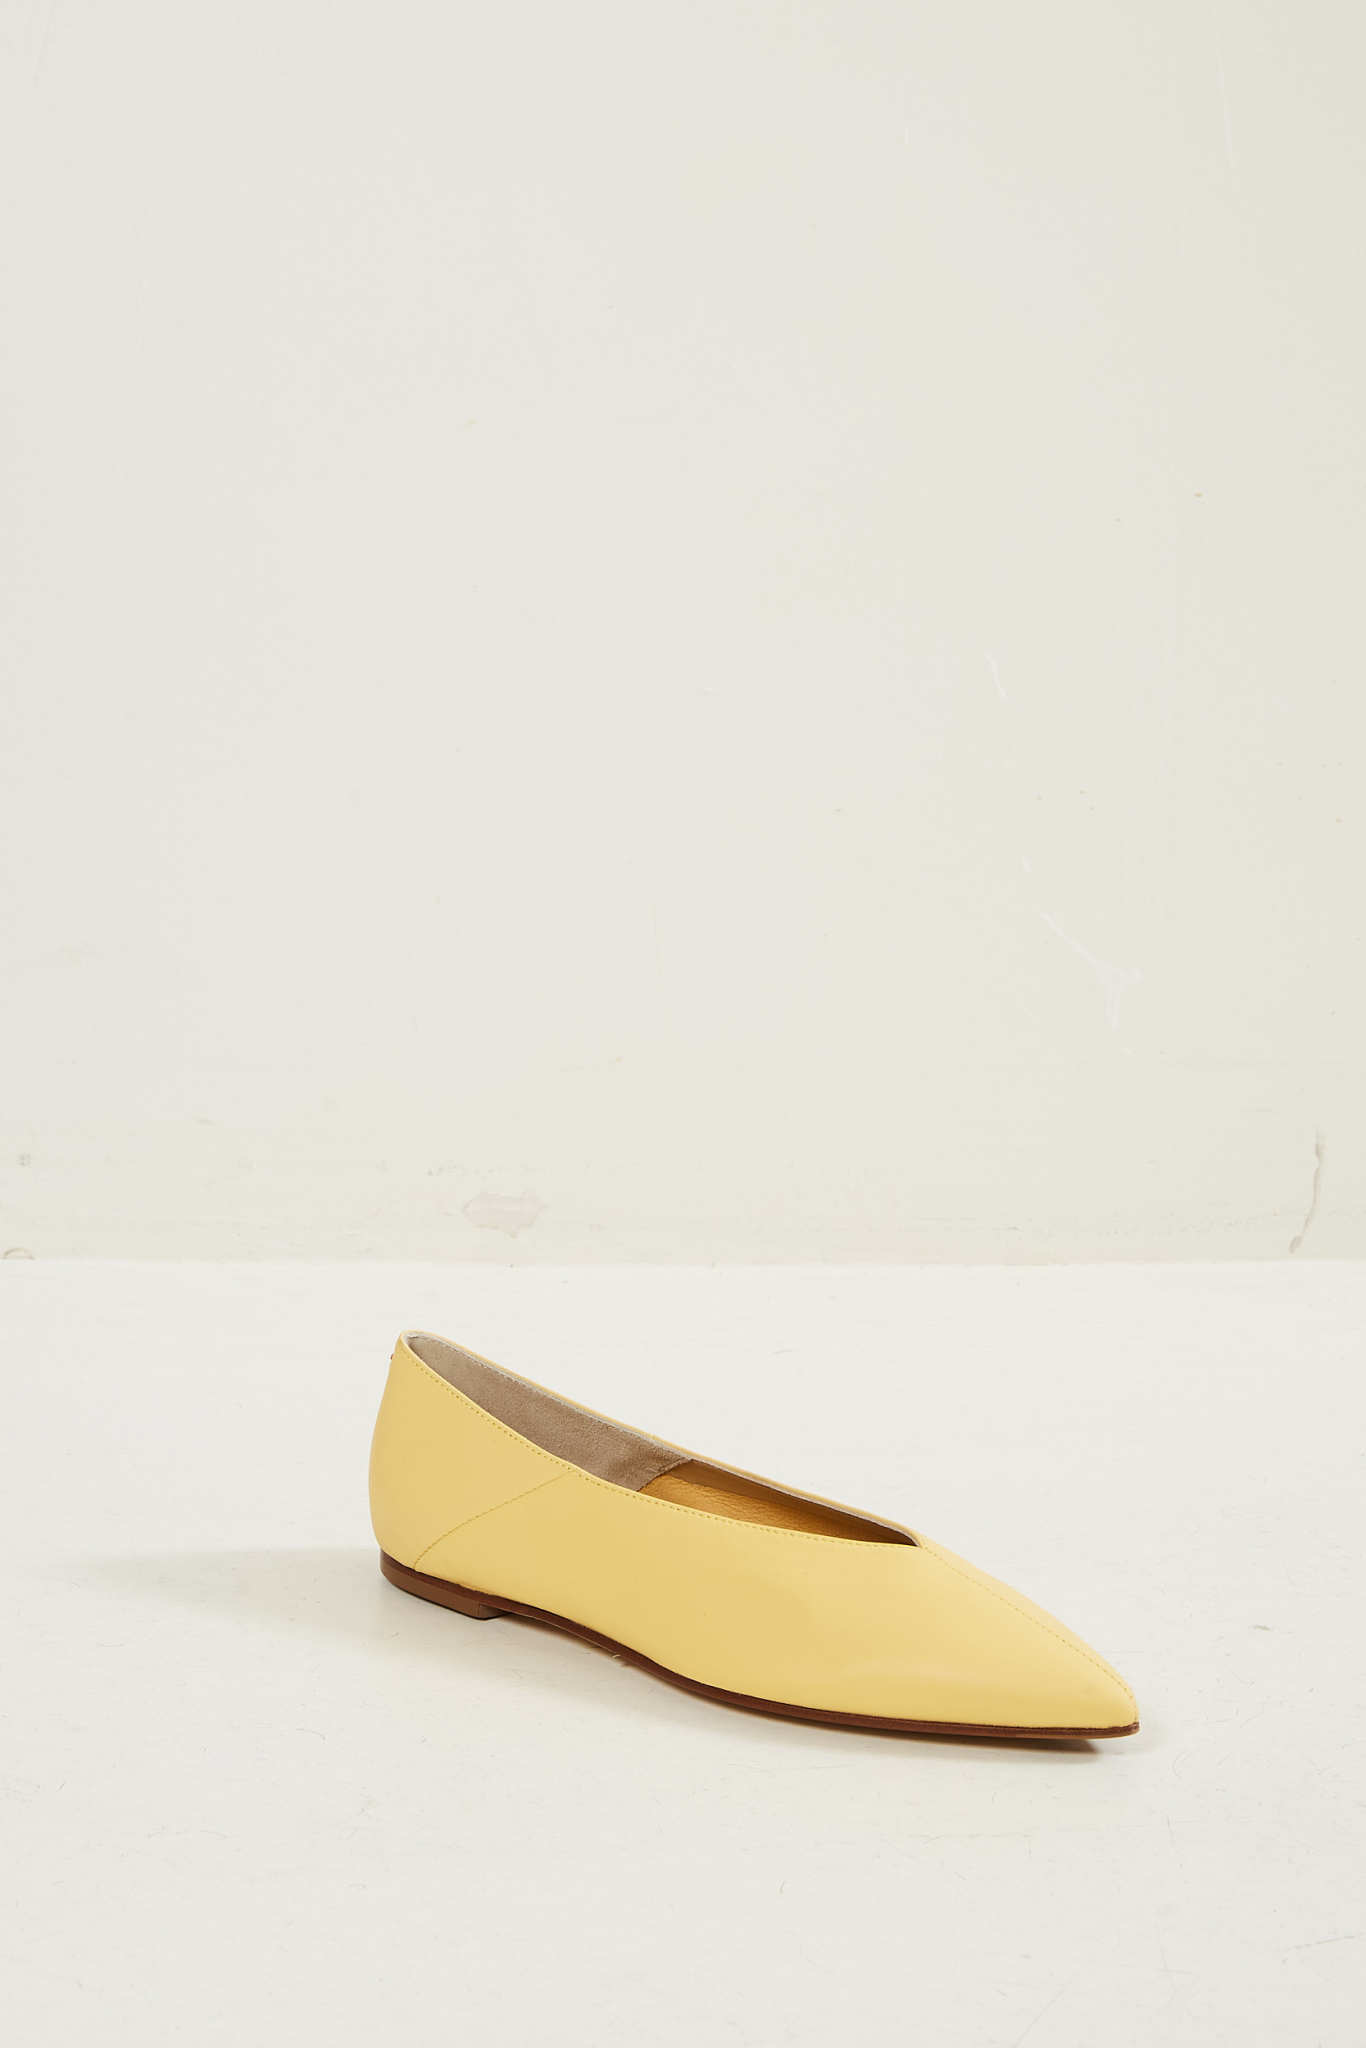 Aeyde Moa Pale Yellow ballerina shoes.